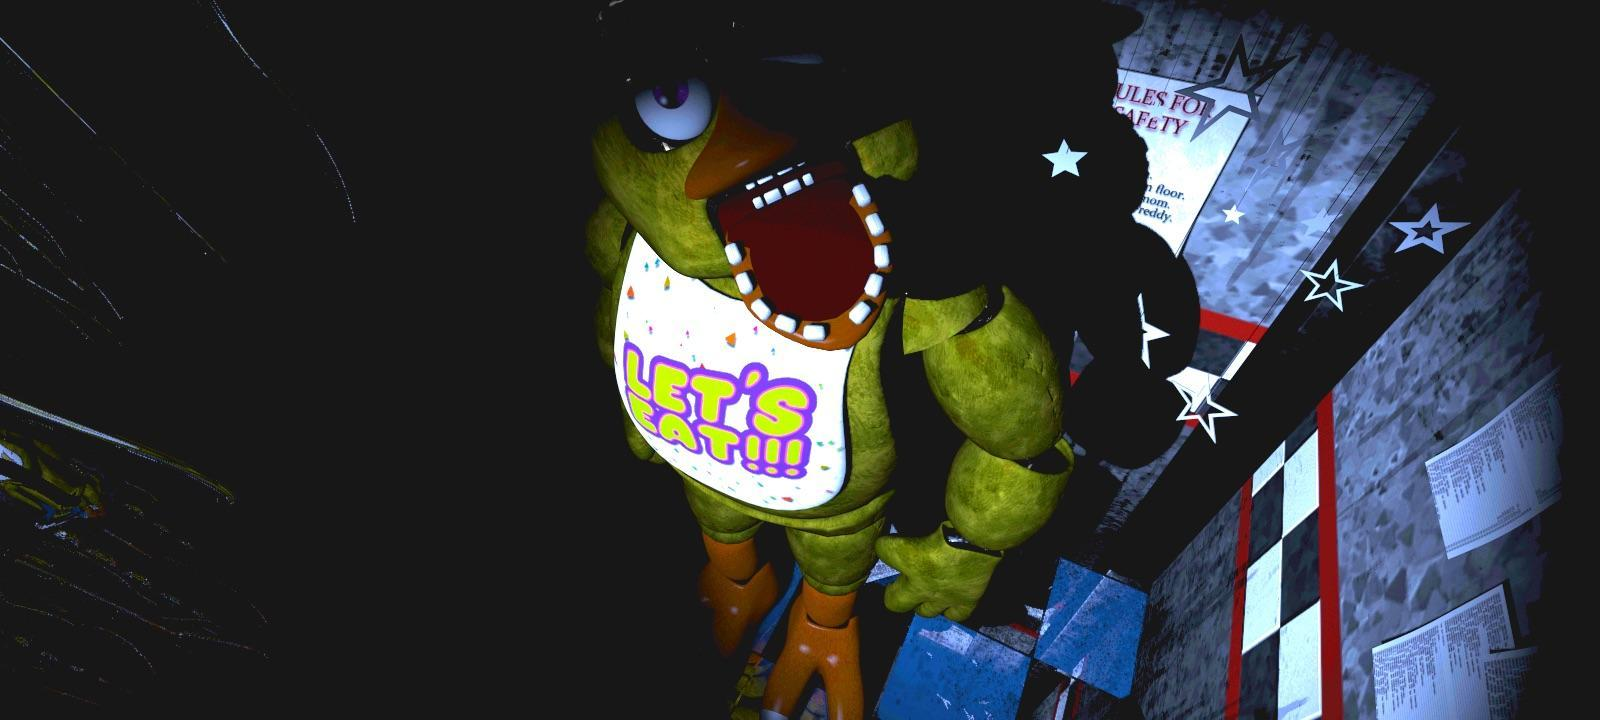 (Fnaf 1) Which one was the scariest?